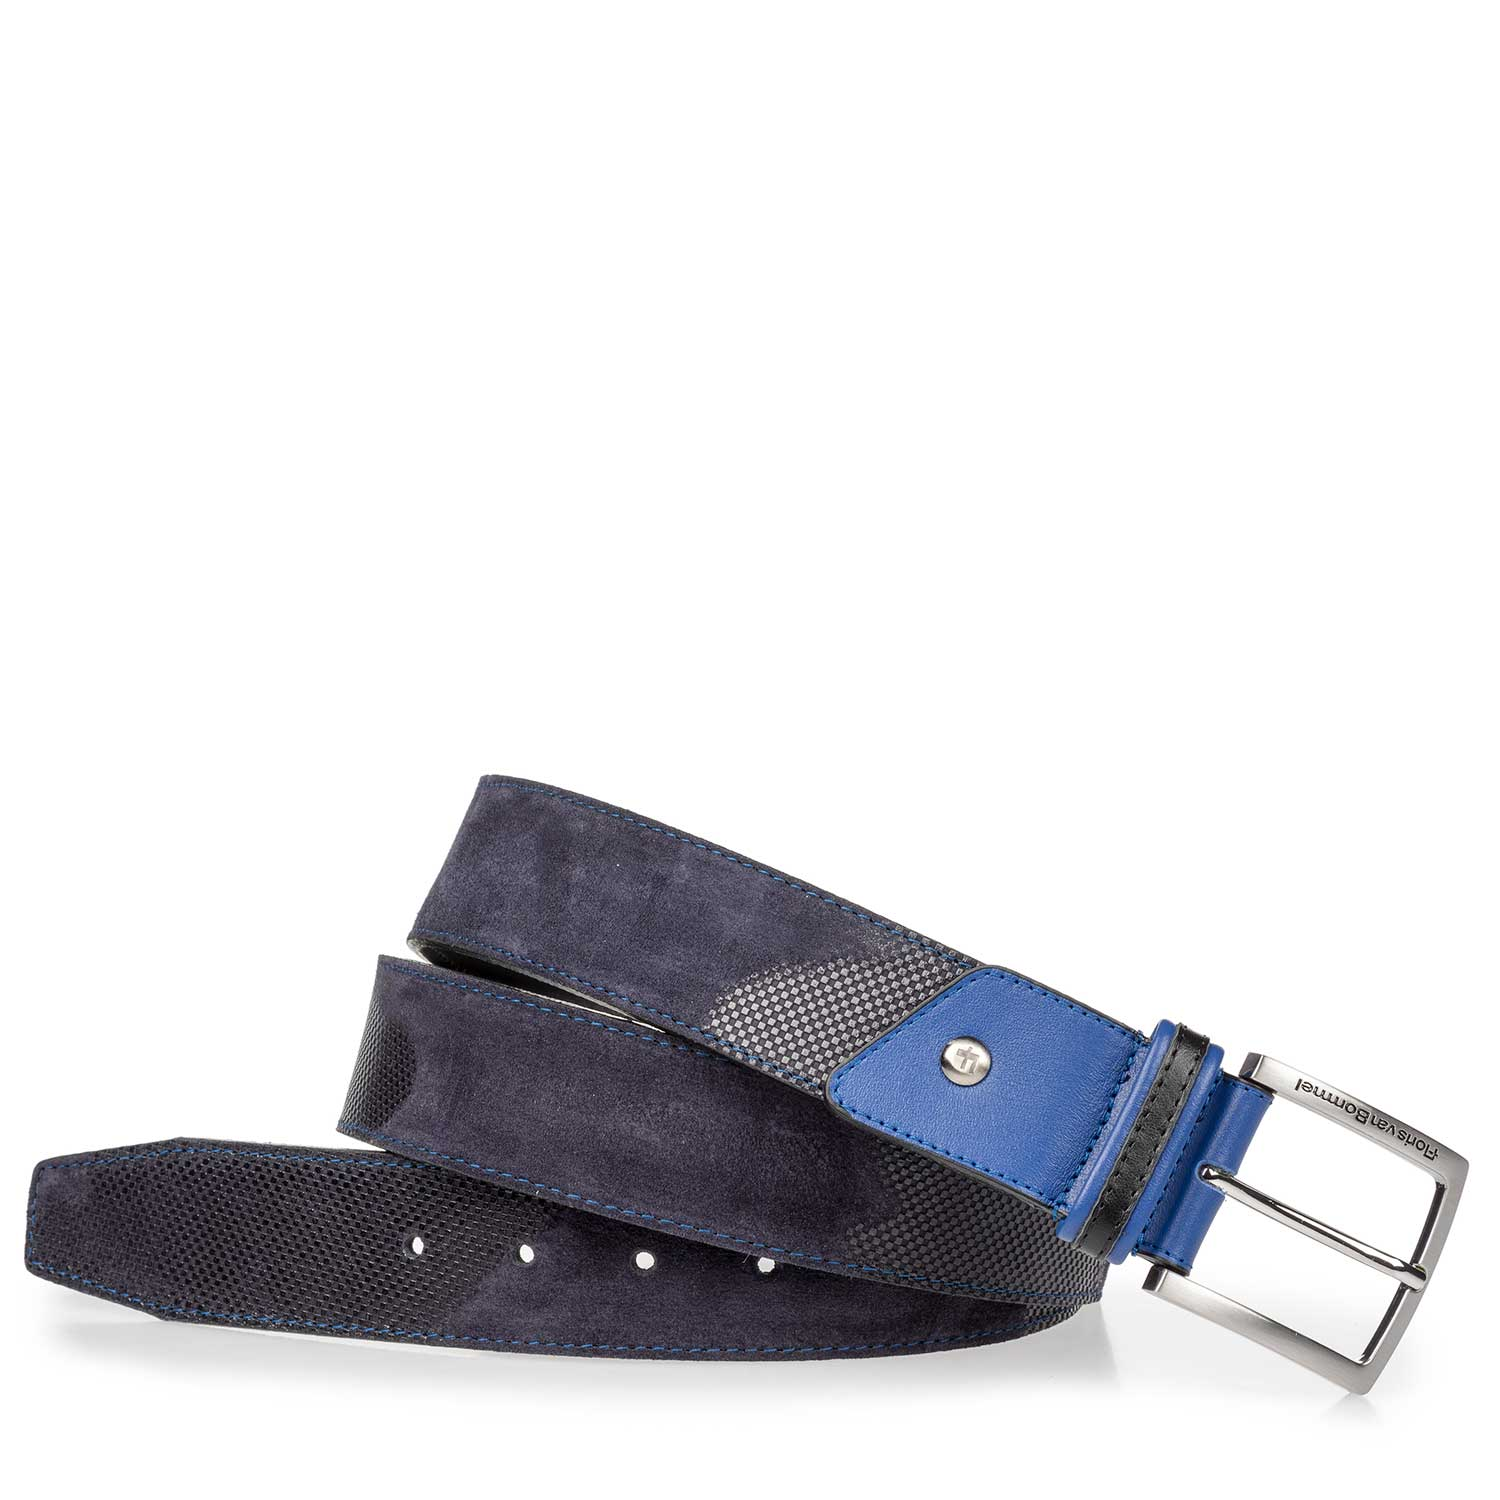 75193/03 - Blue suede leather belt